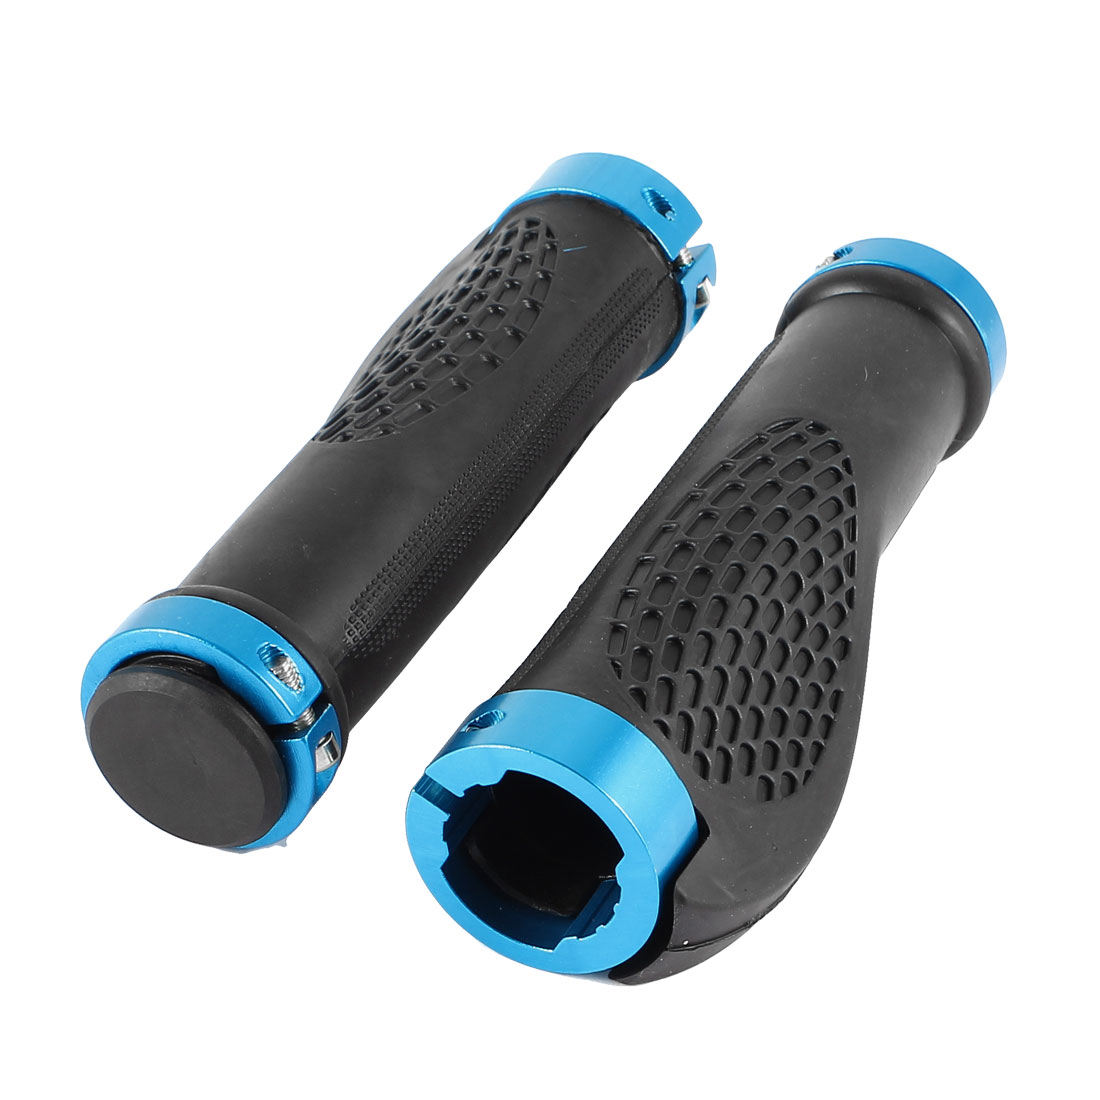 2 Pcs Ergonomic Antislip Mountain Bike Bicycle Handlebar Grips Black Blue